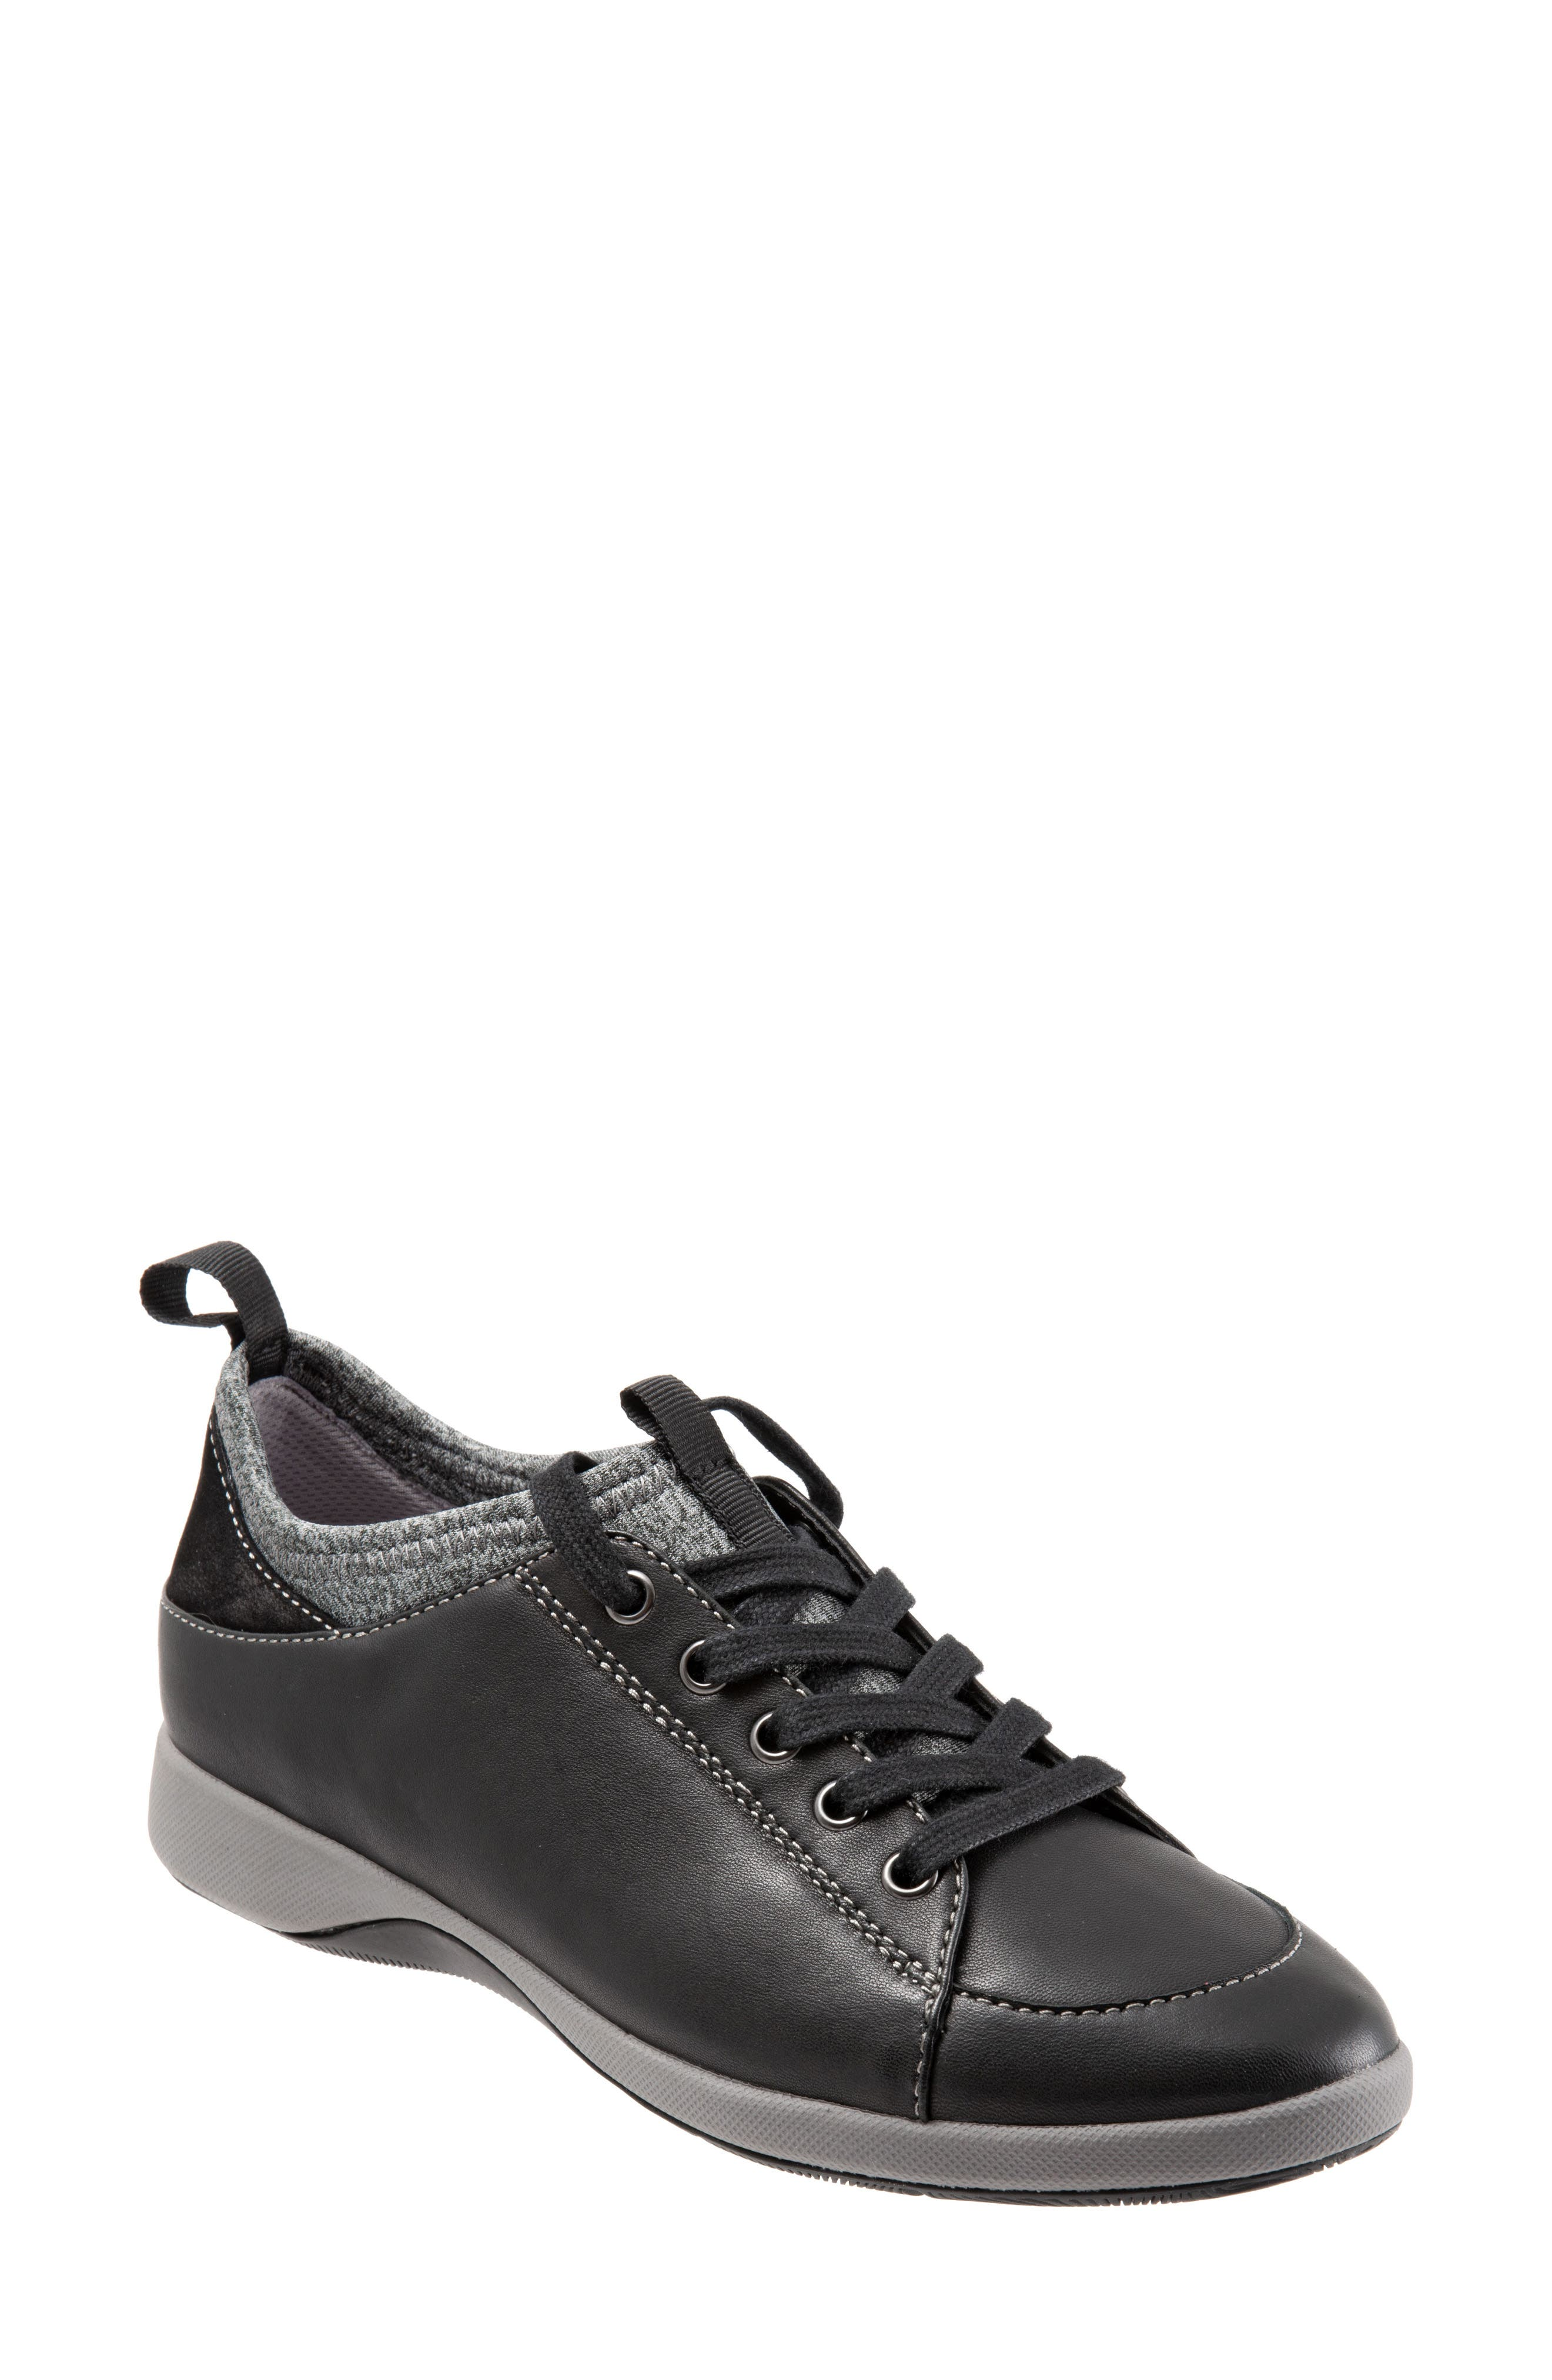 SOFTWALK<SUP>®</SUP> SAVA Haven Sneaker, Main, color, BLACK/ GREY LEATHER